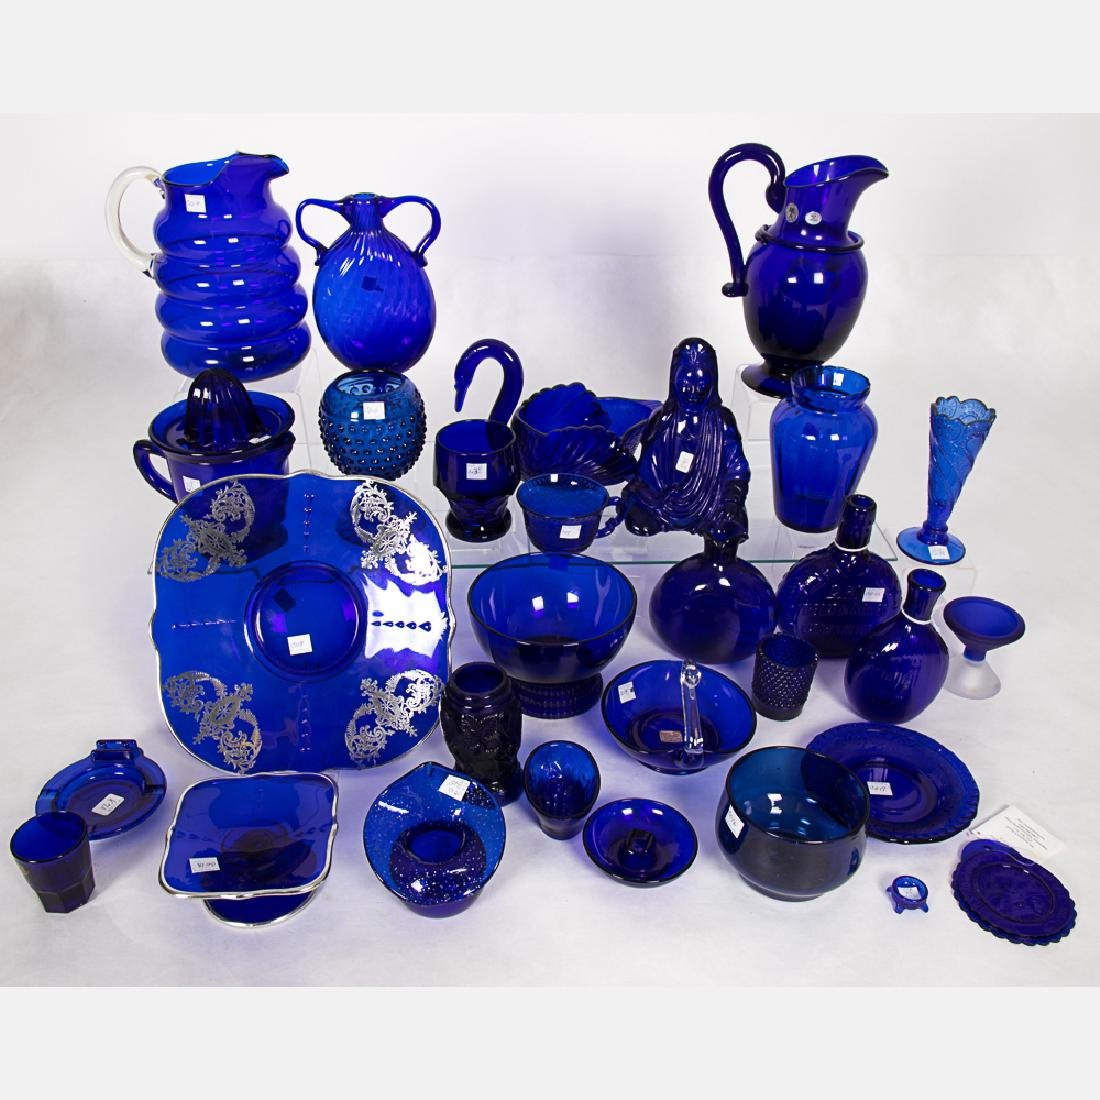 A Collection of Cobalt Blue Glass Serving and